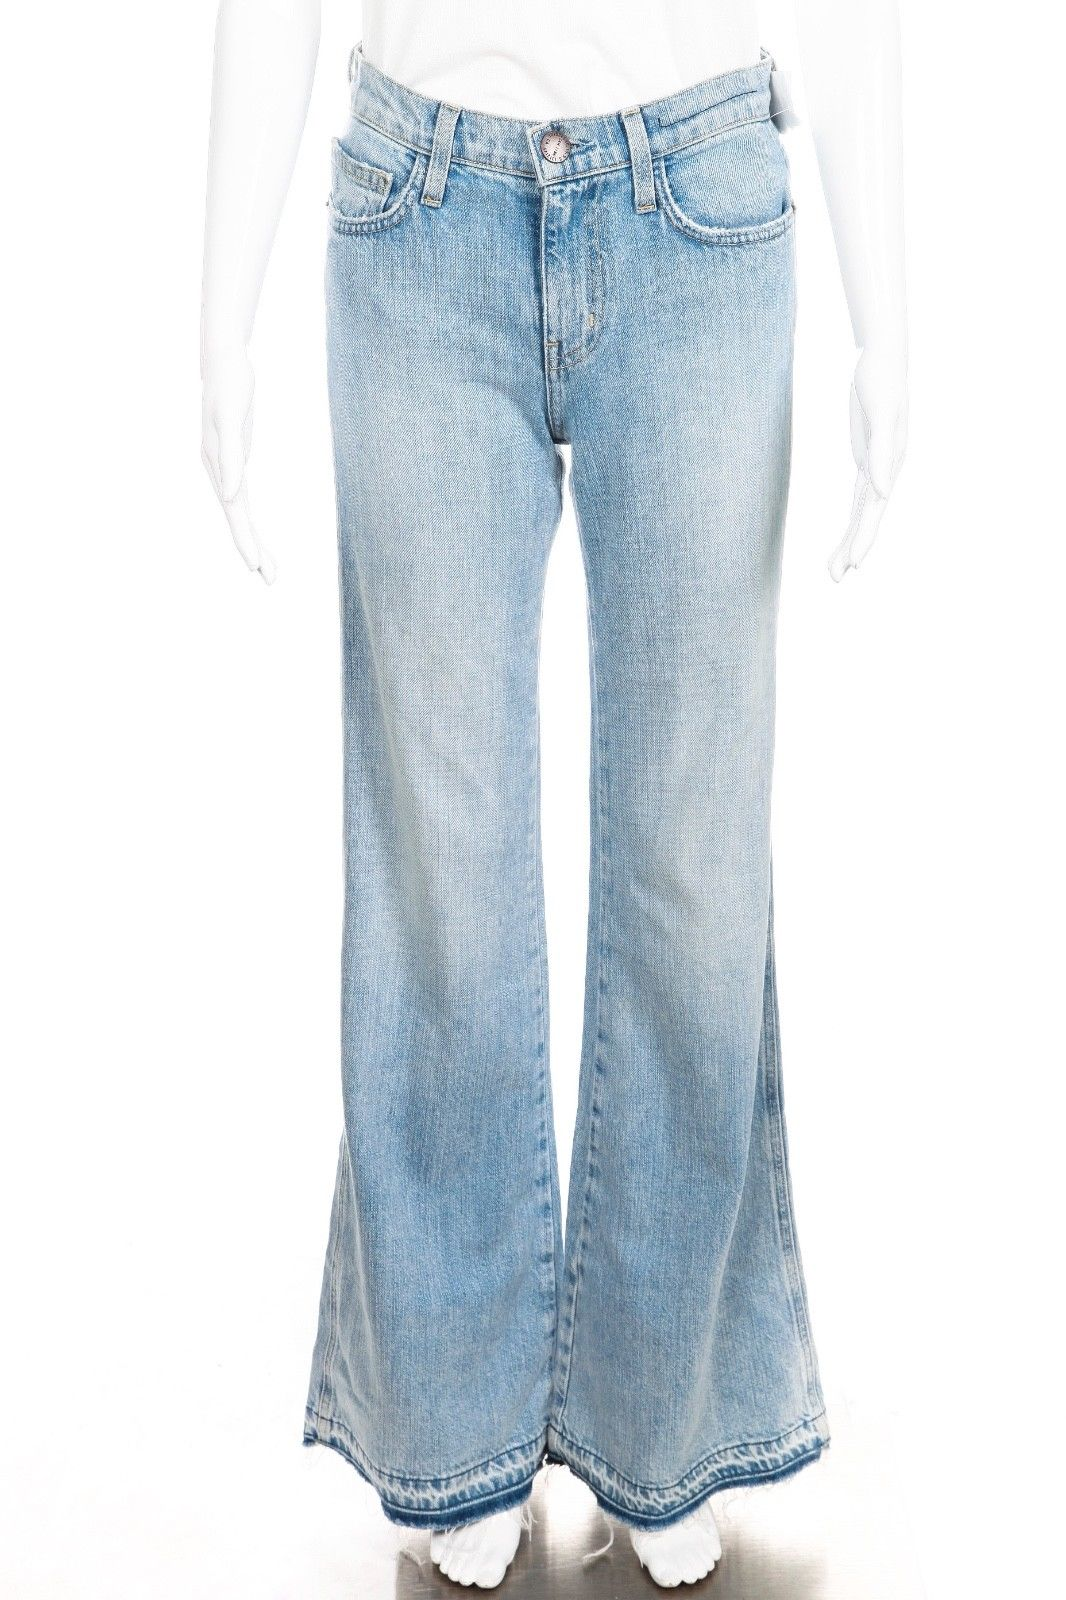 CURRENT/ELLIOTT Girl Crush Frayed Bell Bottom Jeans Size 24 (New)